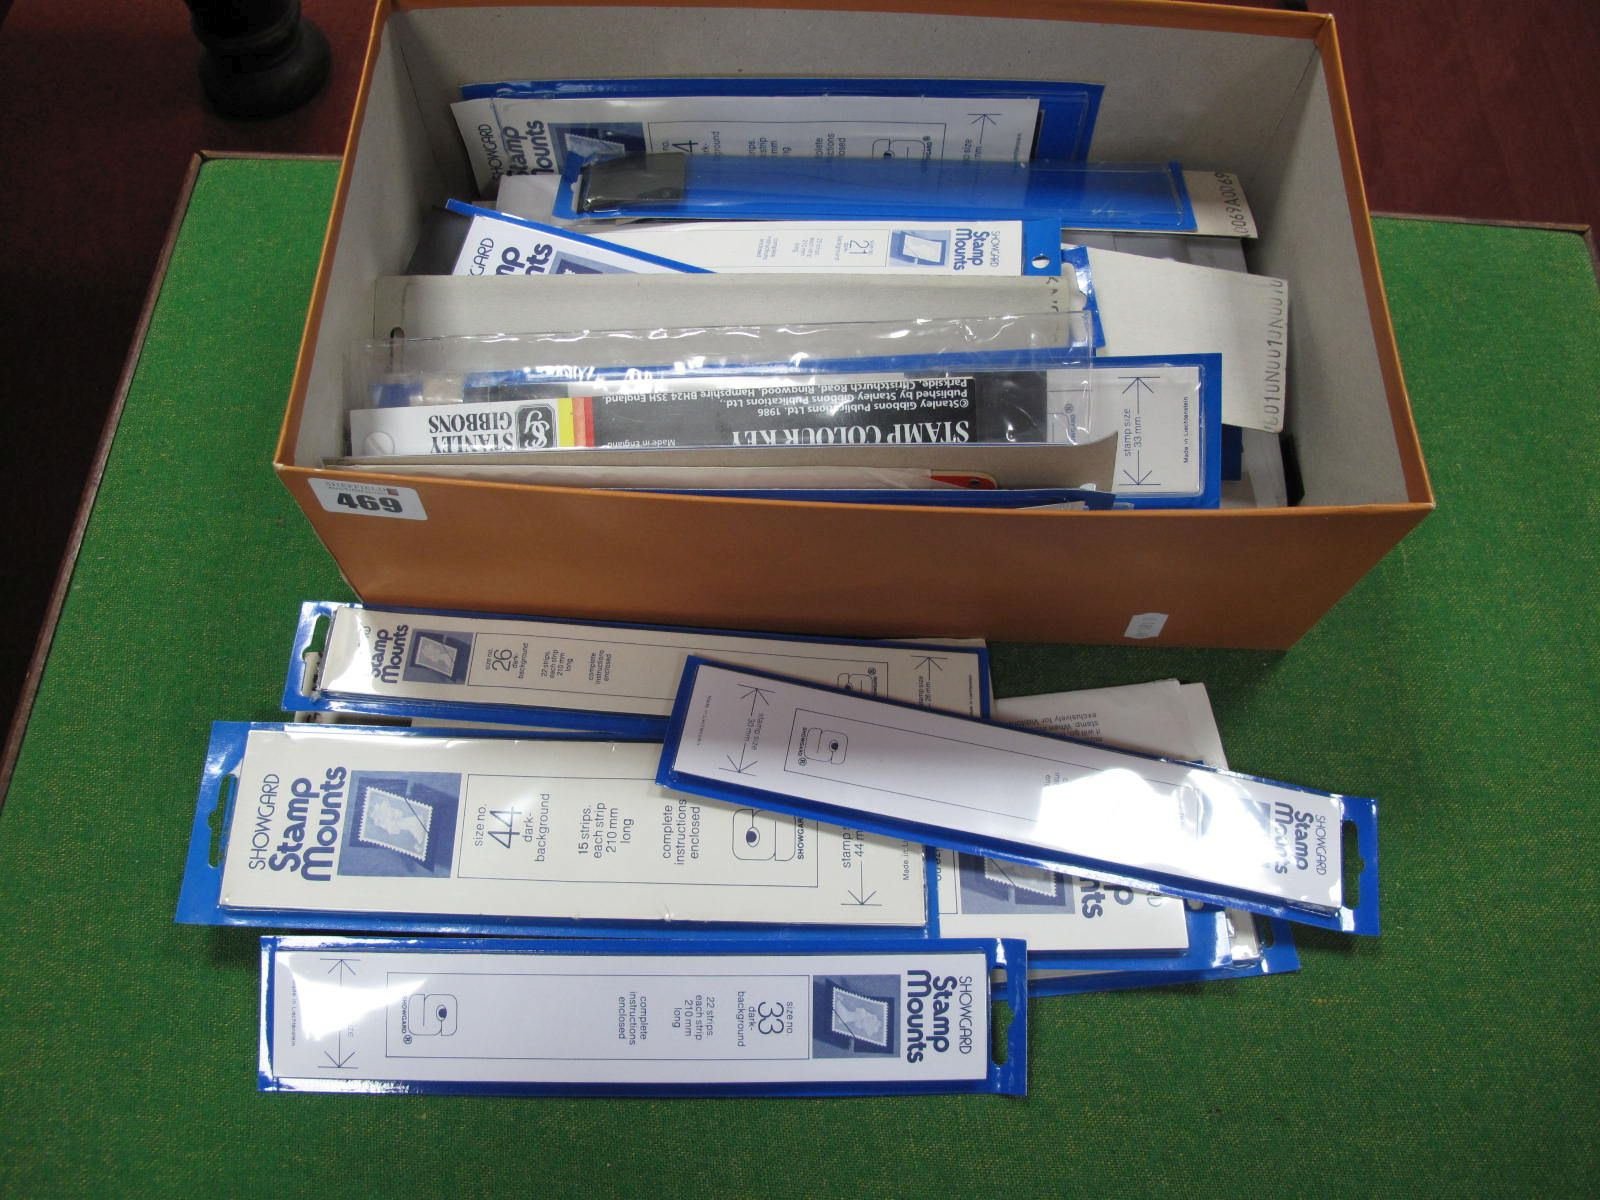 A Shoe Box Full of Showgard Stamp Mount Strips, from size 21mm to 55mm +, many hundreds of strips